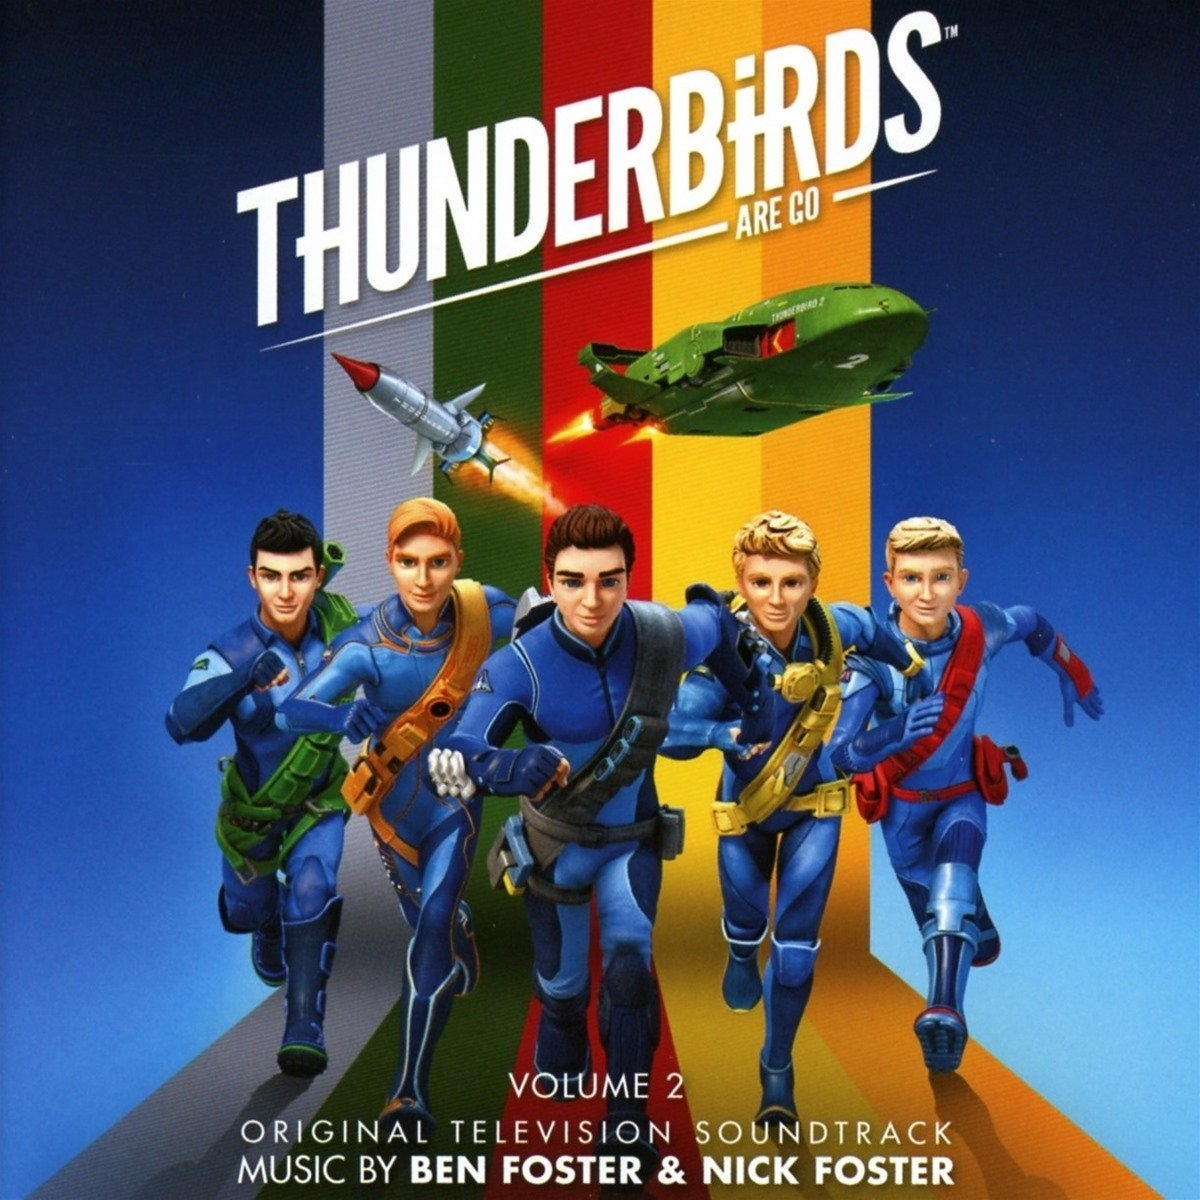 ost 02 18 cat Thunderbirds are go